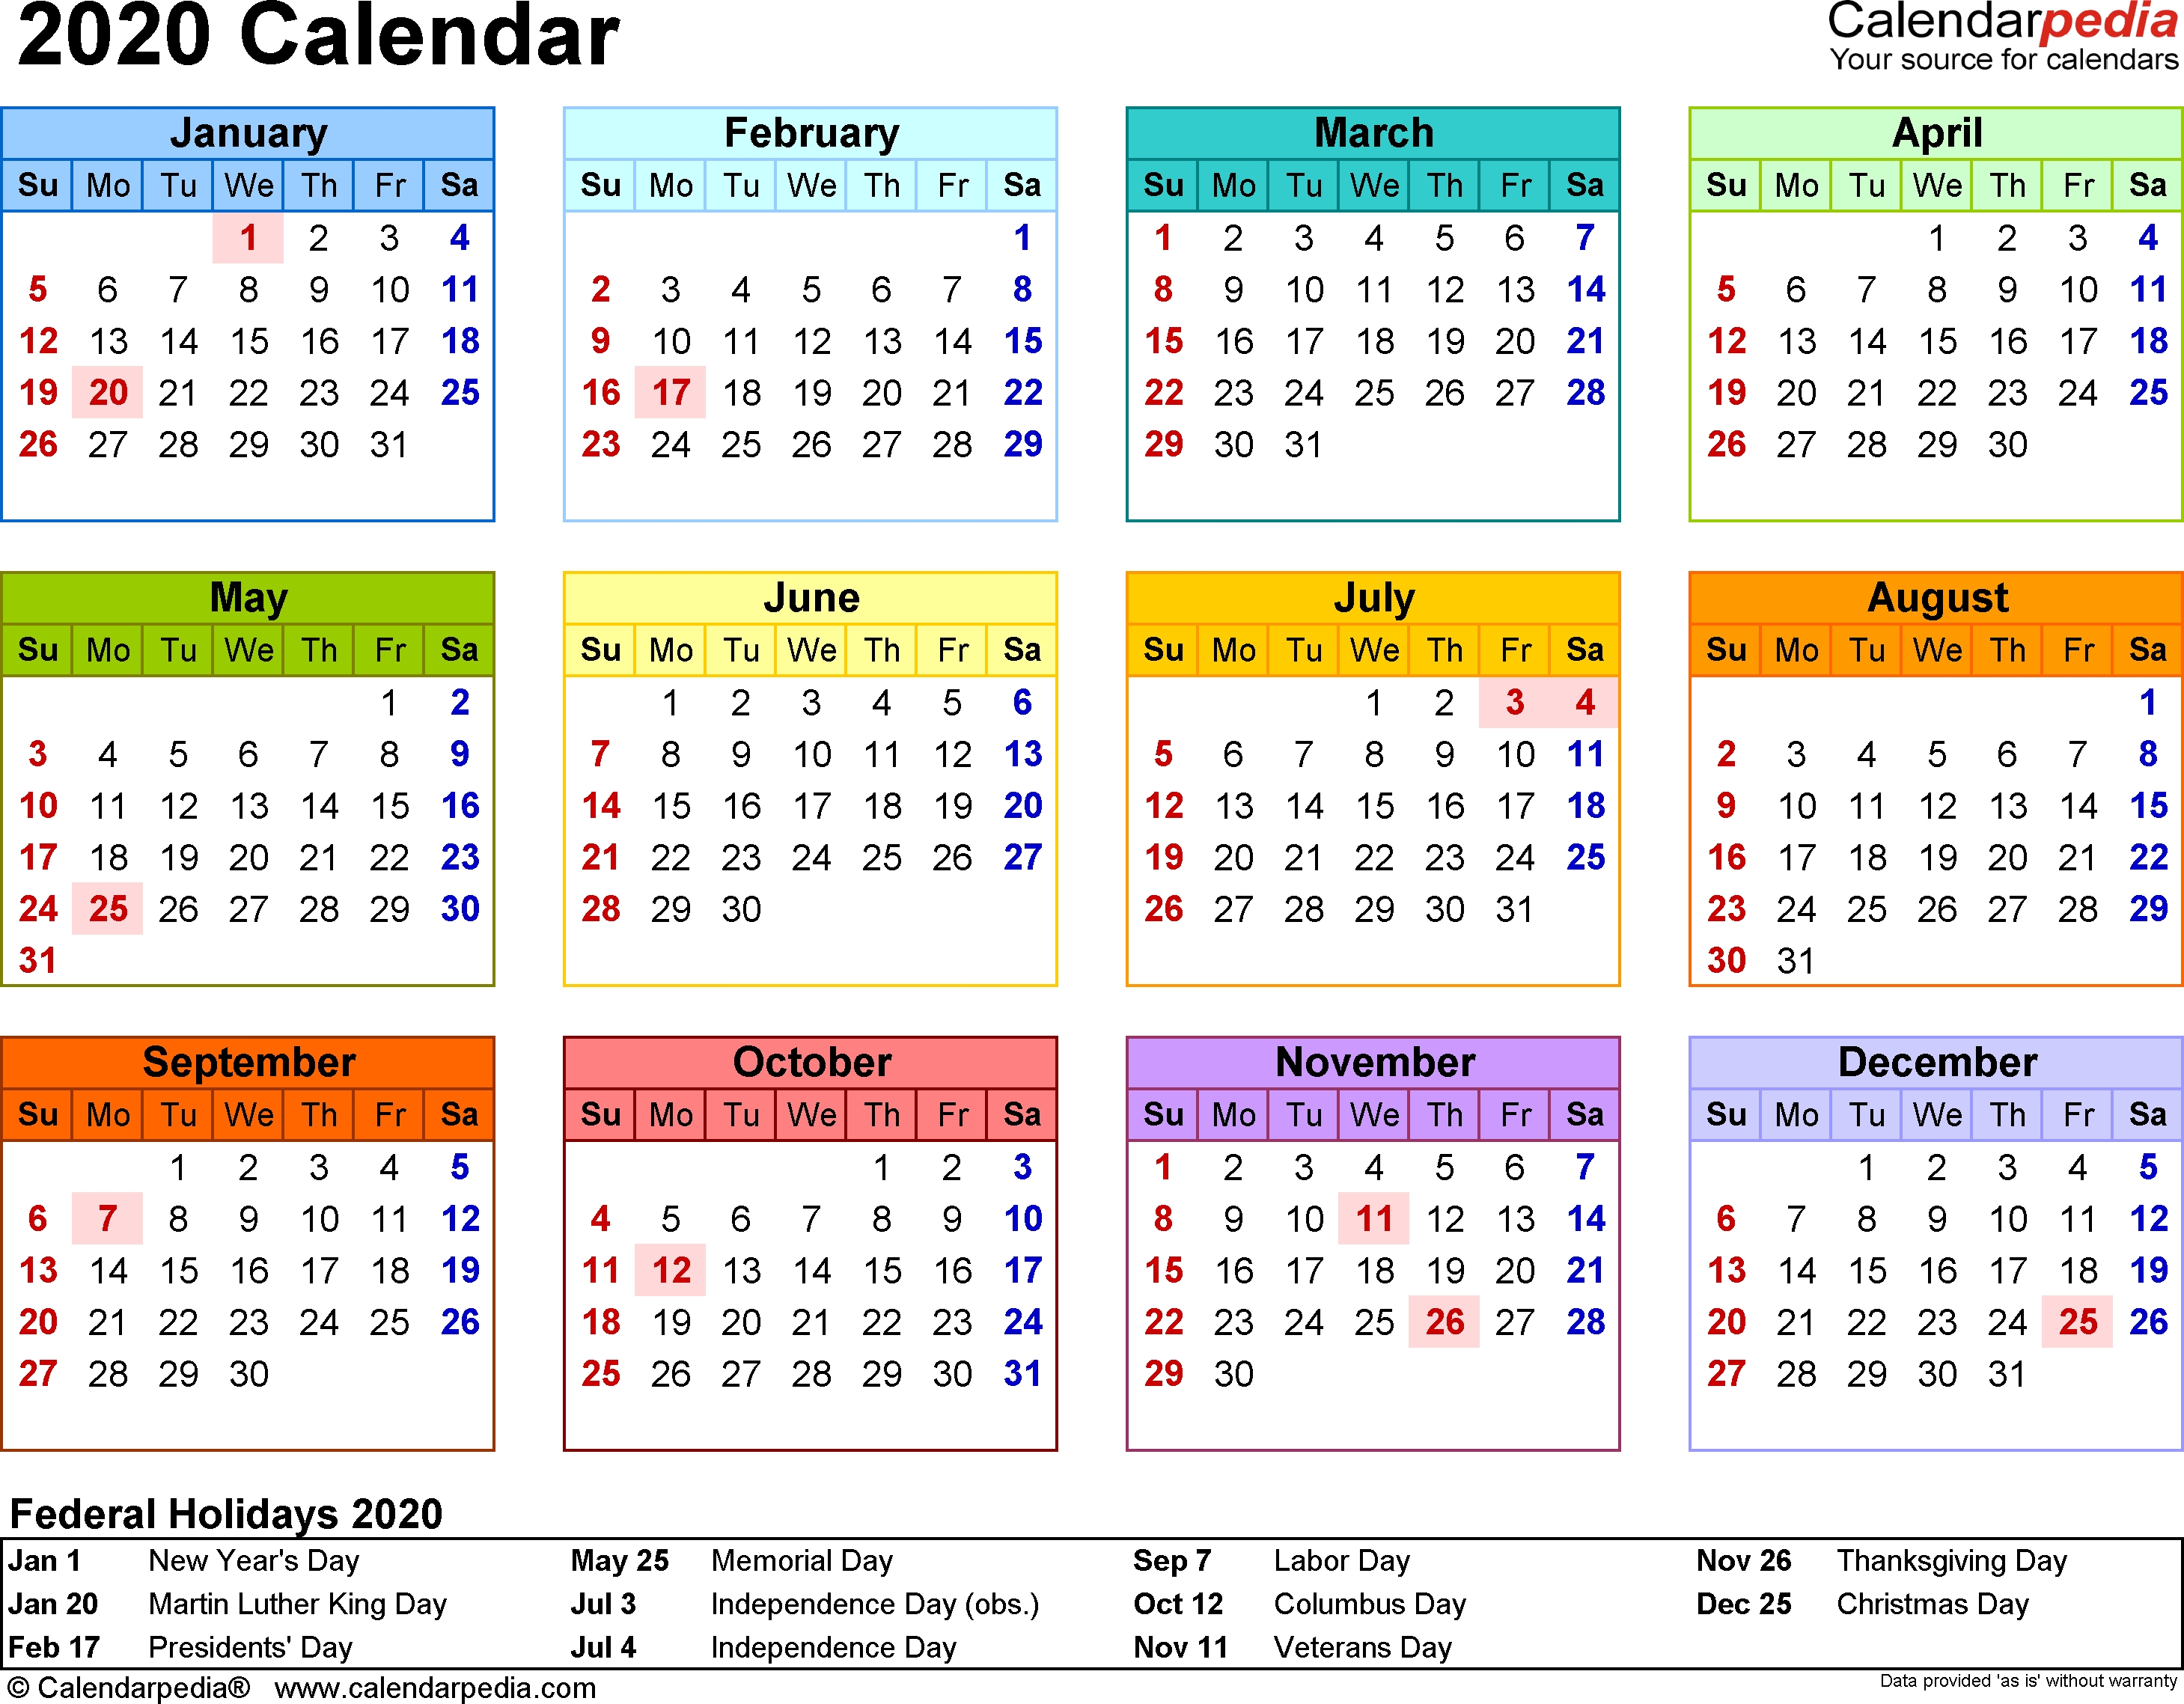 2020 Calendar Pdf - 17 Free Printable Calendar Templates intended for 2020 Printable Year At A Glance Calendar